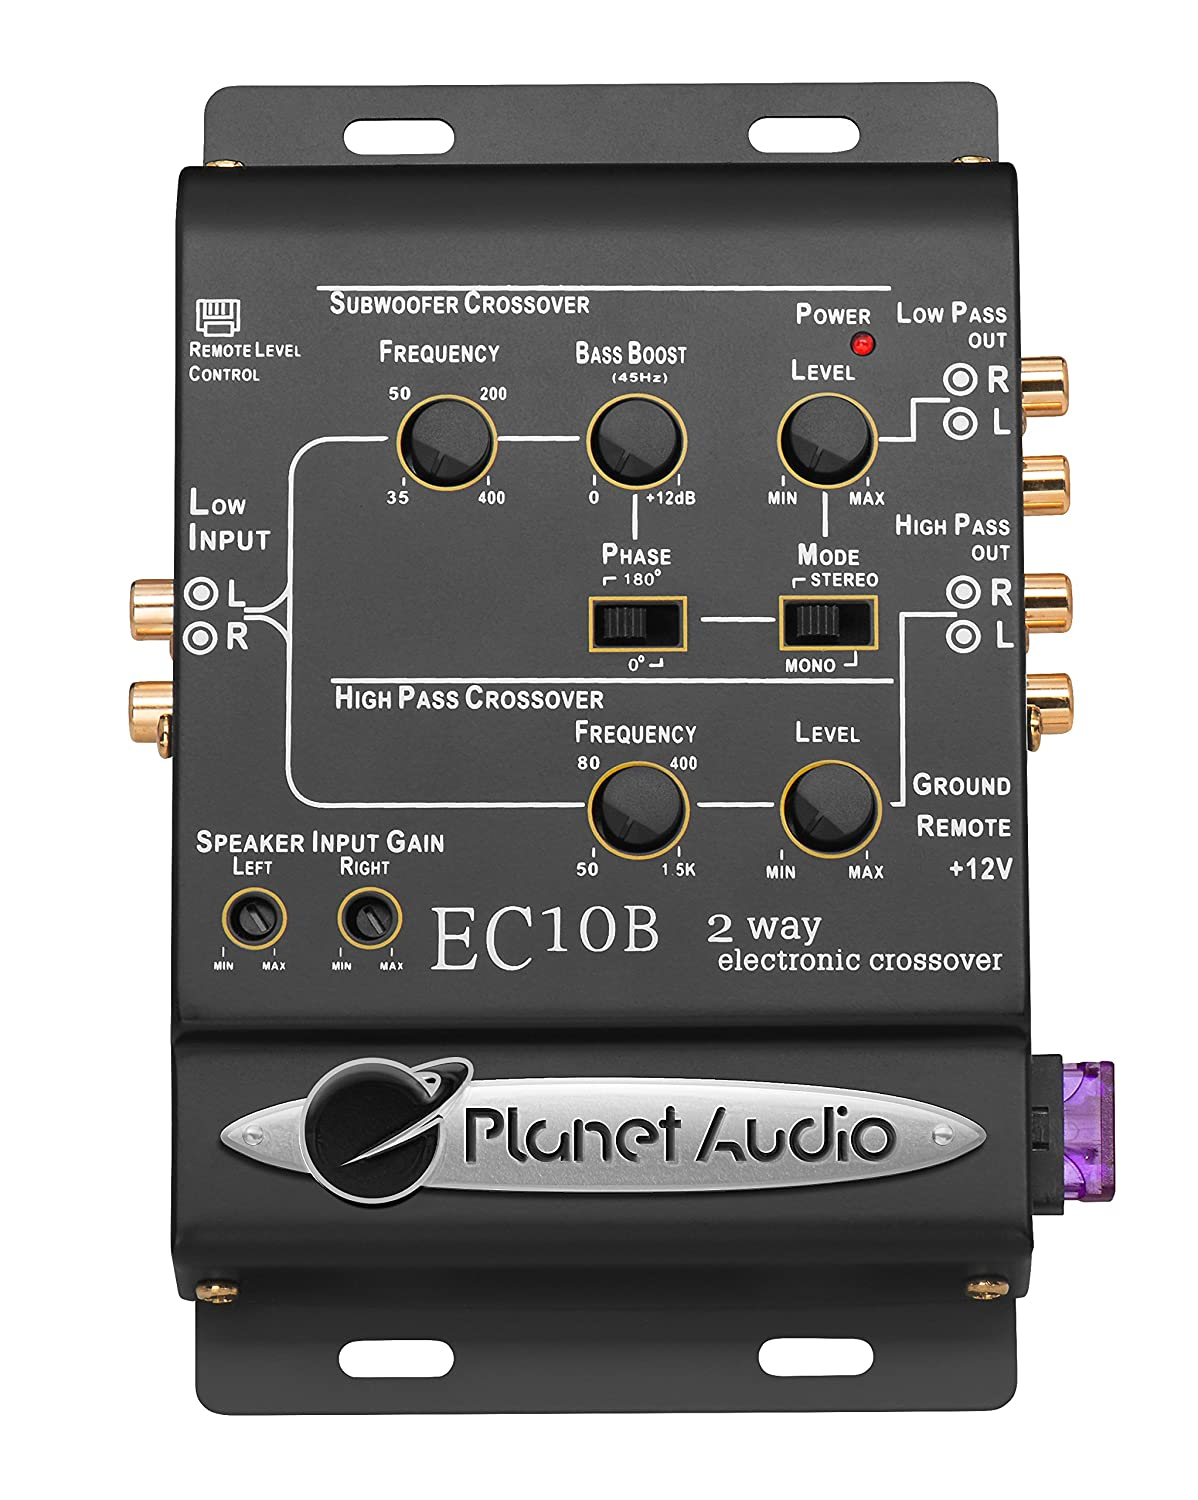 Planet Audio Ec20b 3 Way Electronic Crossover Electronics Clarion Eqs746 Wire Harness